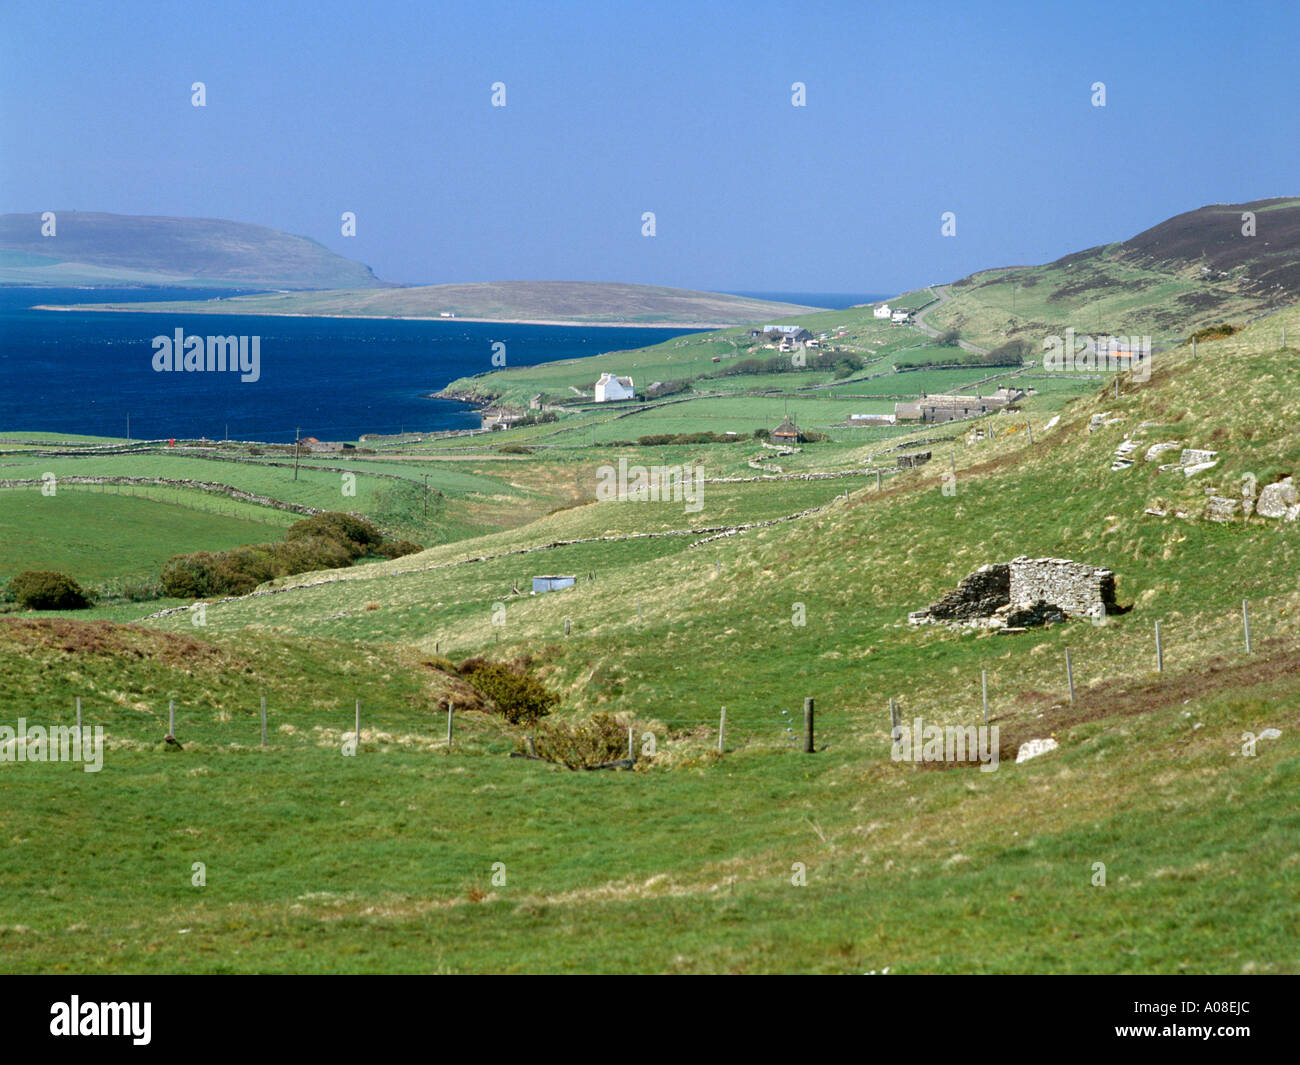 dh  ROUSAY ORKNEY White house Viera Lodge Rousay west coast Frotoft Eynhallow Sound - Stock Image